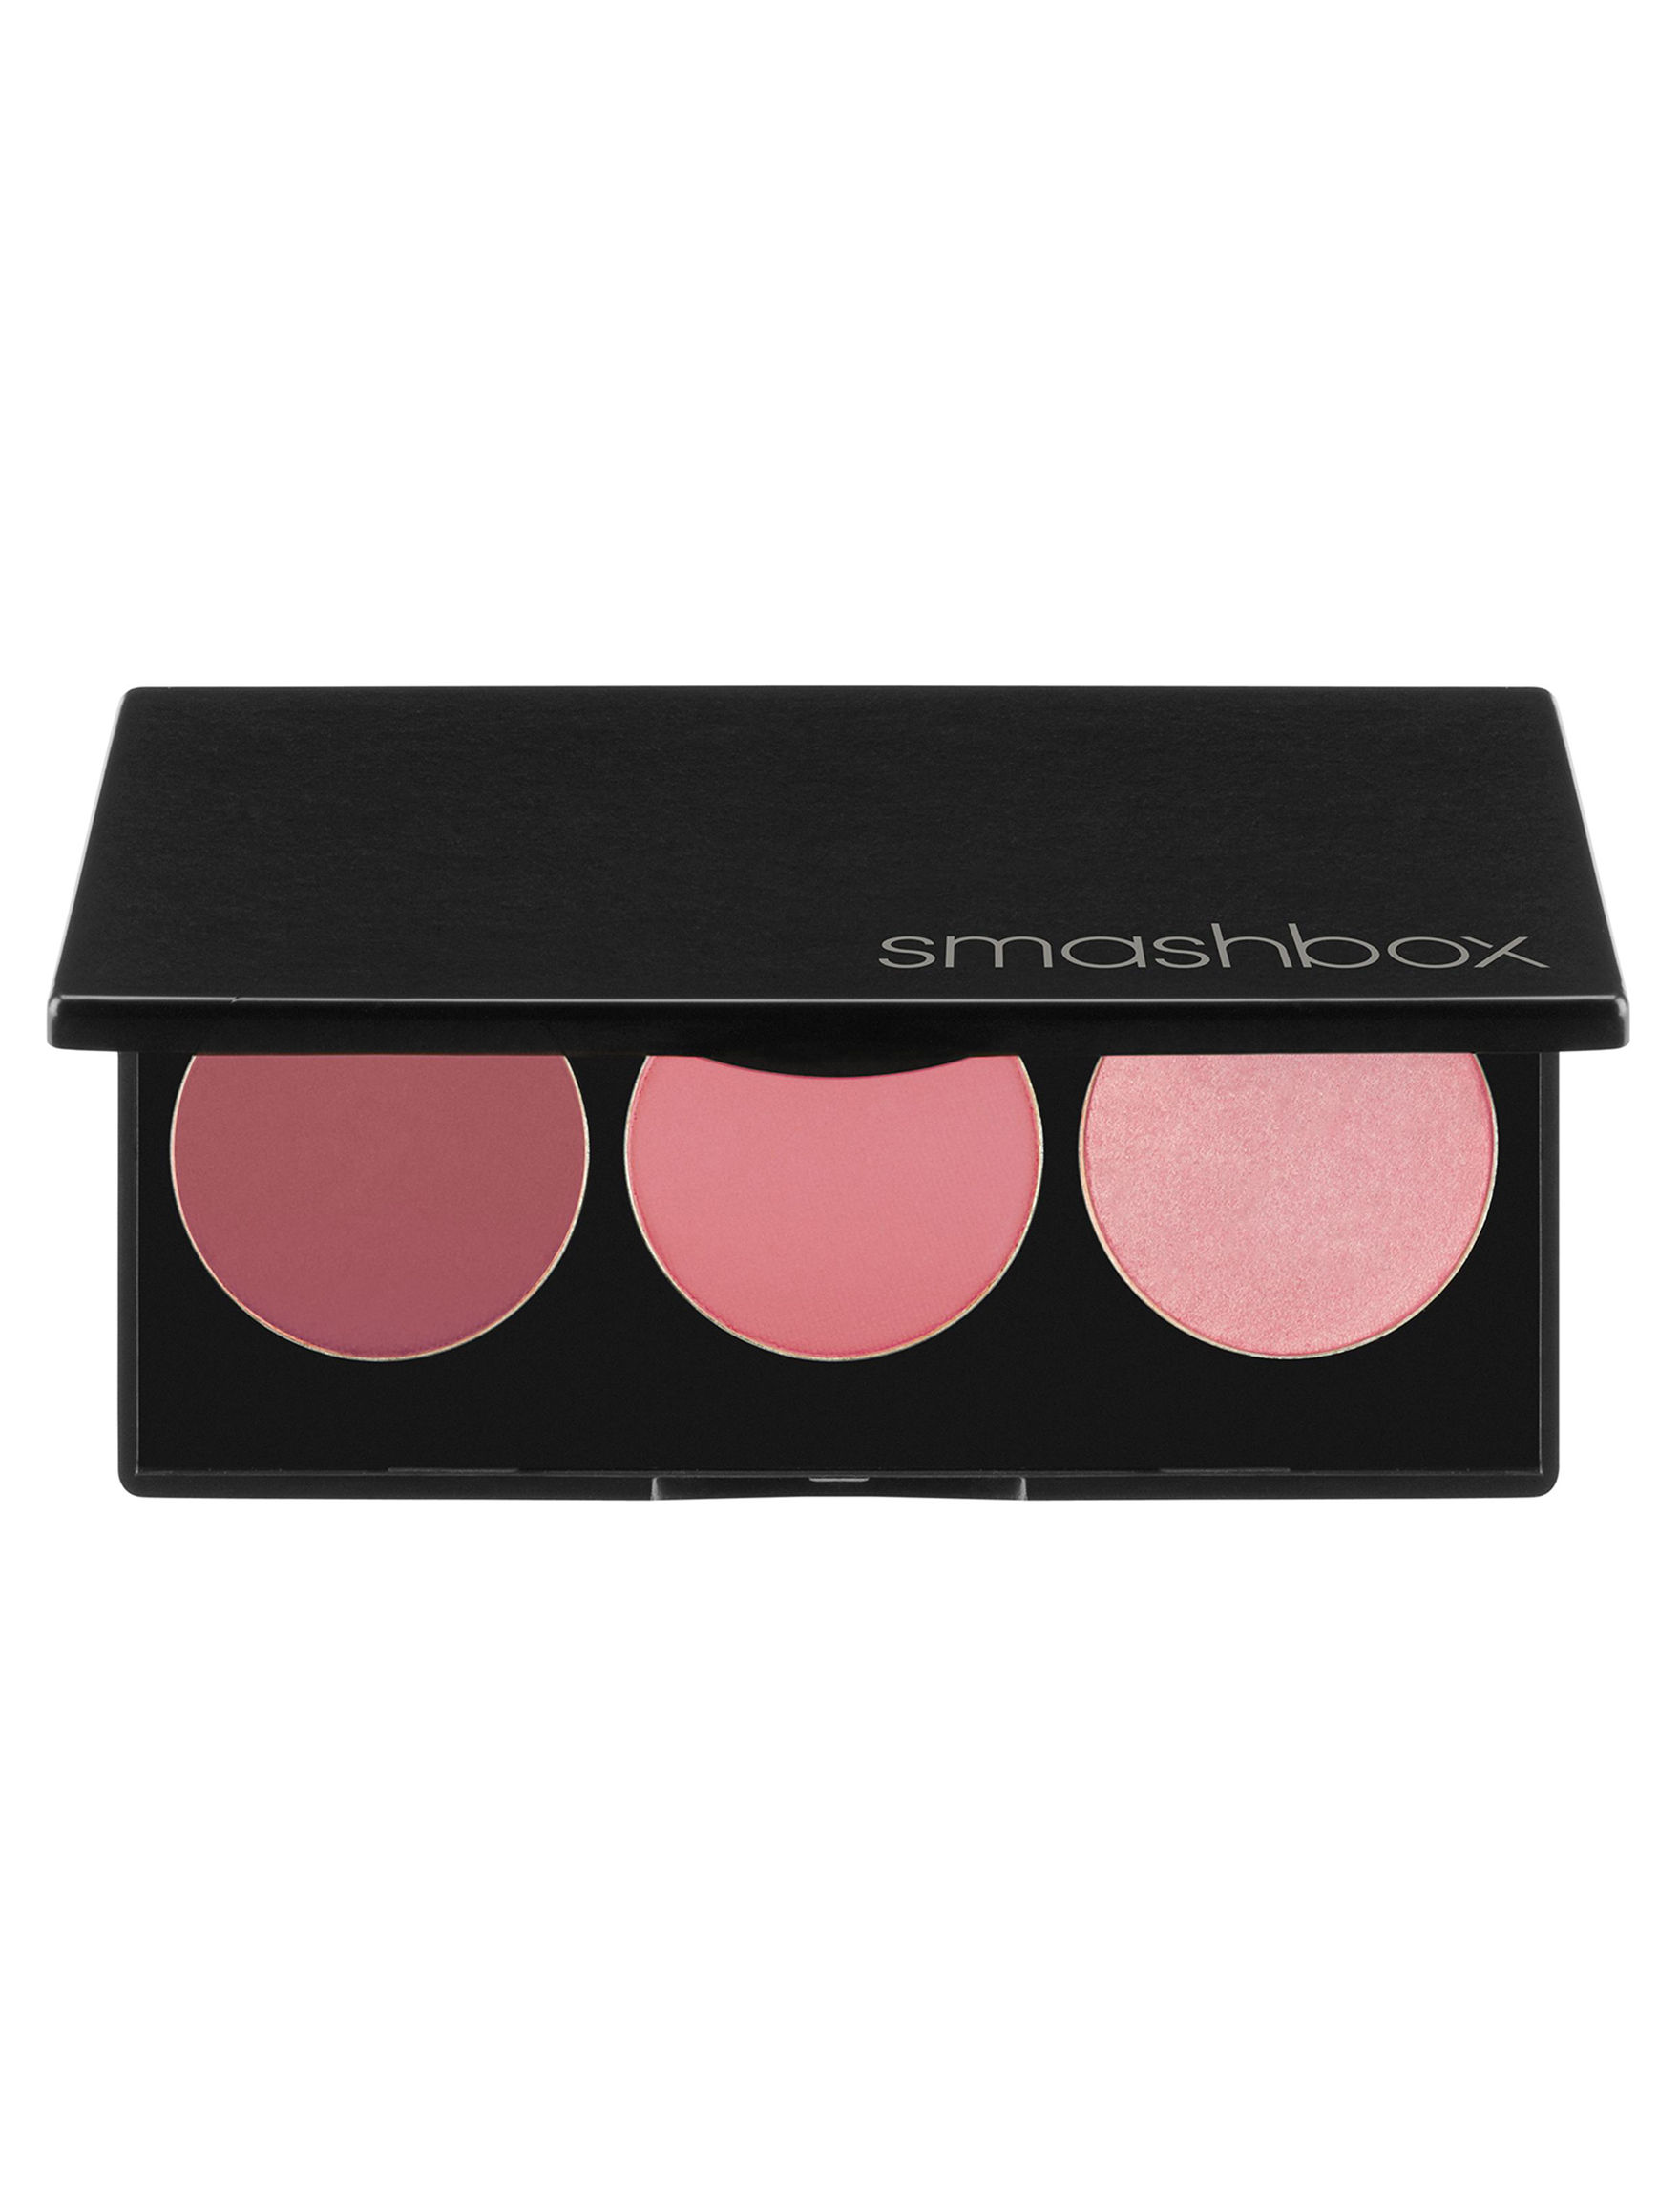 Smashbox Malibu Berry Face Blush